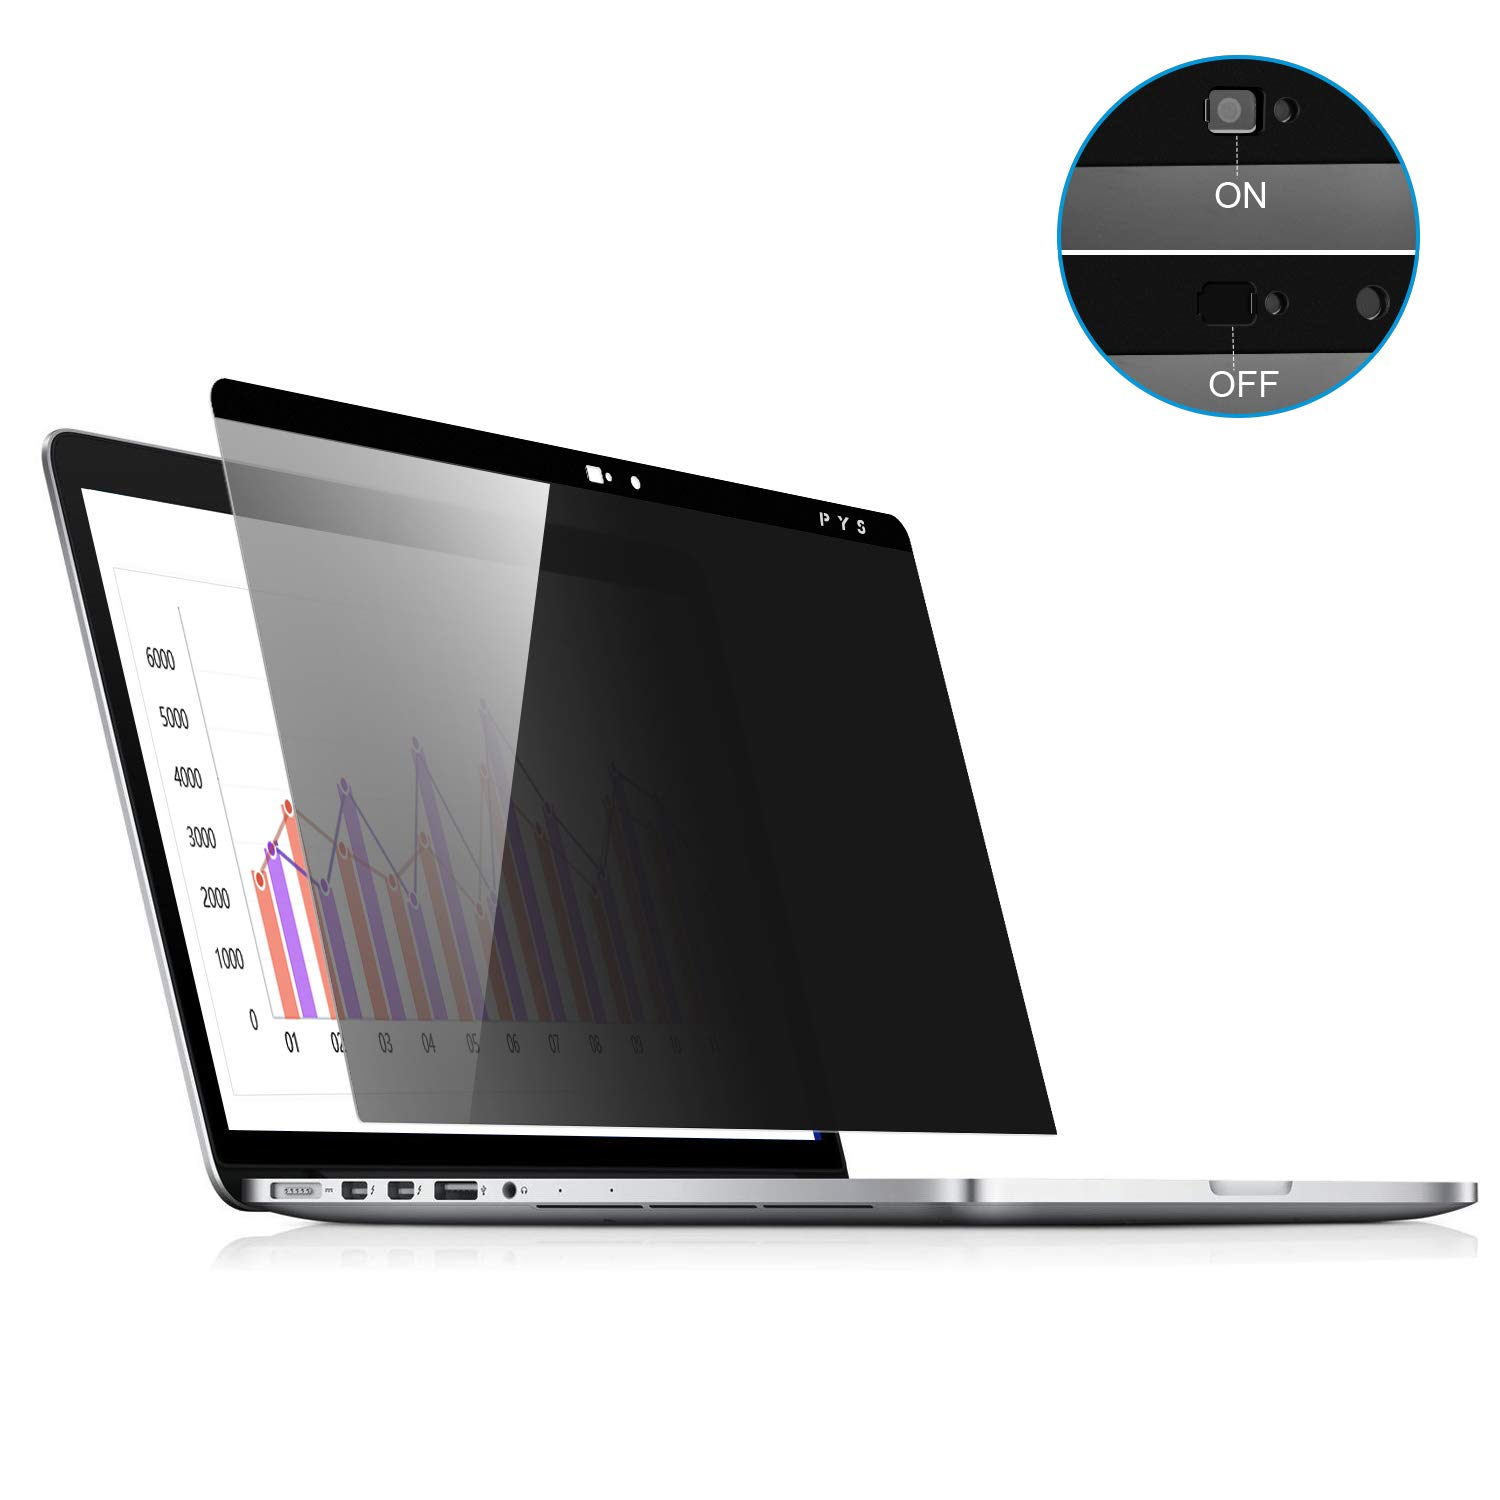 MacBook Pro 15 Magnetic Privacy Screen,Laptop Webcam Cover- Privacy Screen Protector Compatible MacBook pro 15.4 inch (Late 2016-2018 Including Touch Bar) Anti-Spy Filter fit Privacy for MacBook